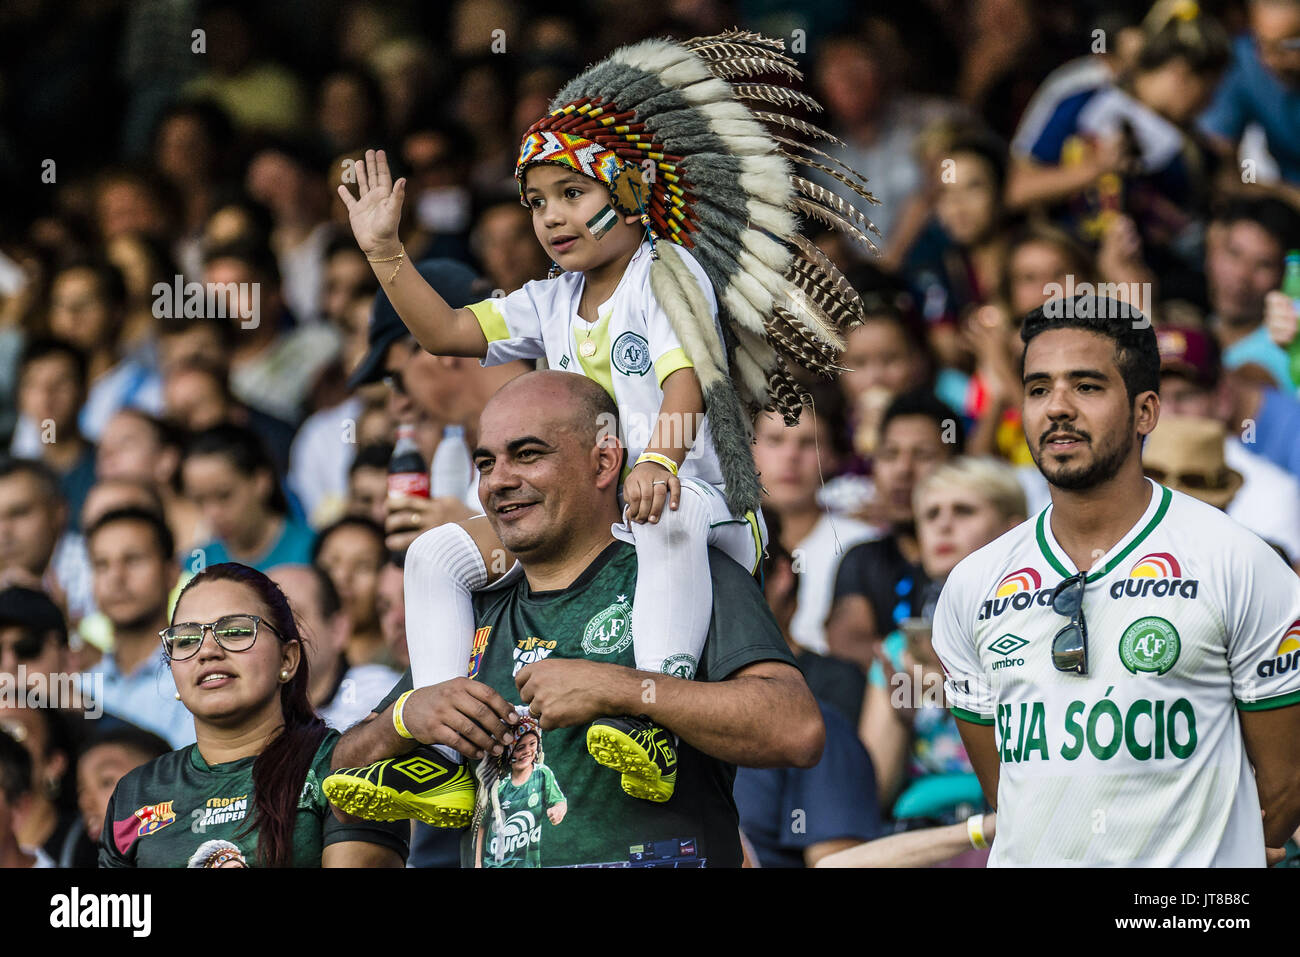 Barcelona, Catalonia, Spain. 7th Aug, 2017. Fans of Chapecoense are pictured prior to the 52nd Joan Gamper Trophy at the Camp Nou stadium in Barcelona Credit: Matthias Oesterle/ZUMA Wire/Alamy Live News - Stock Image